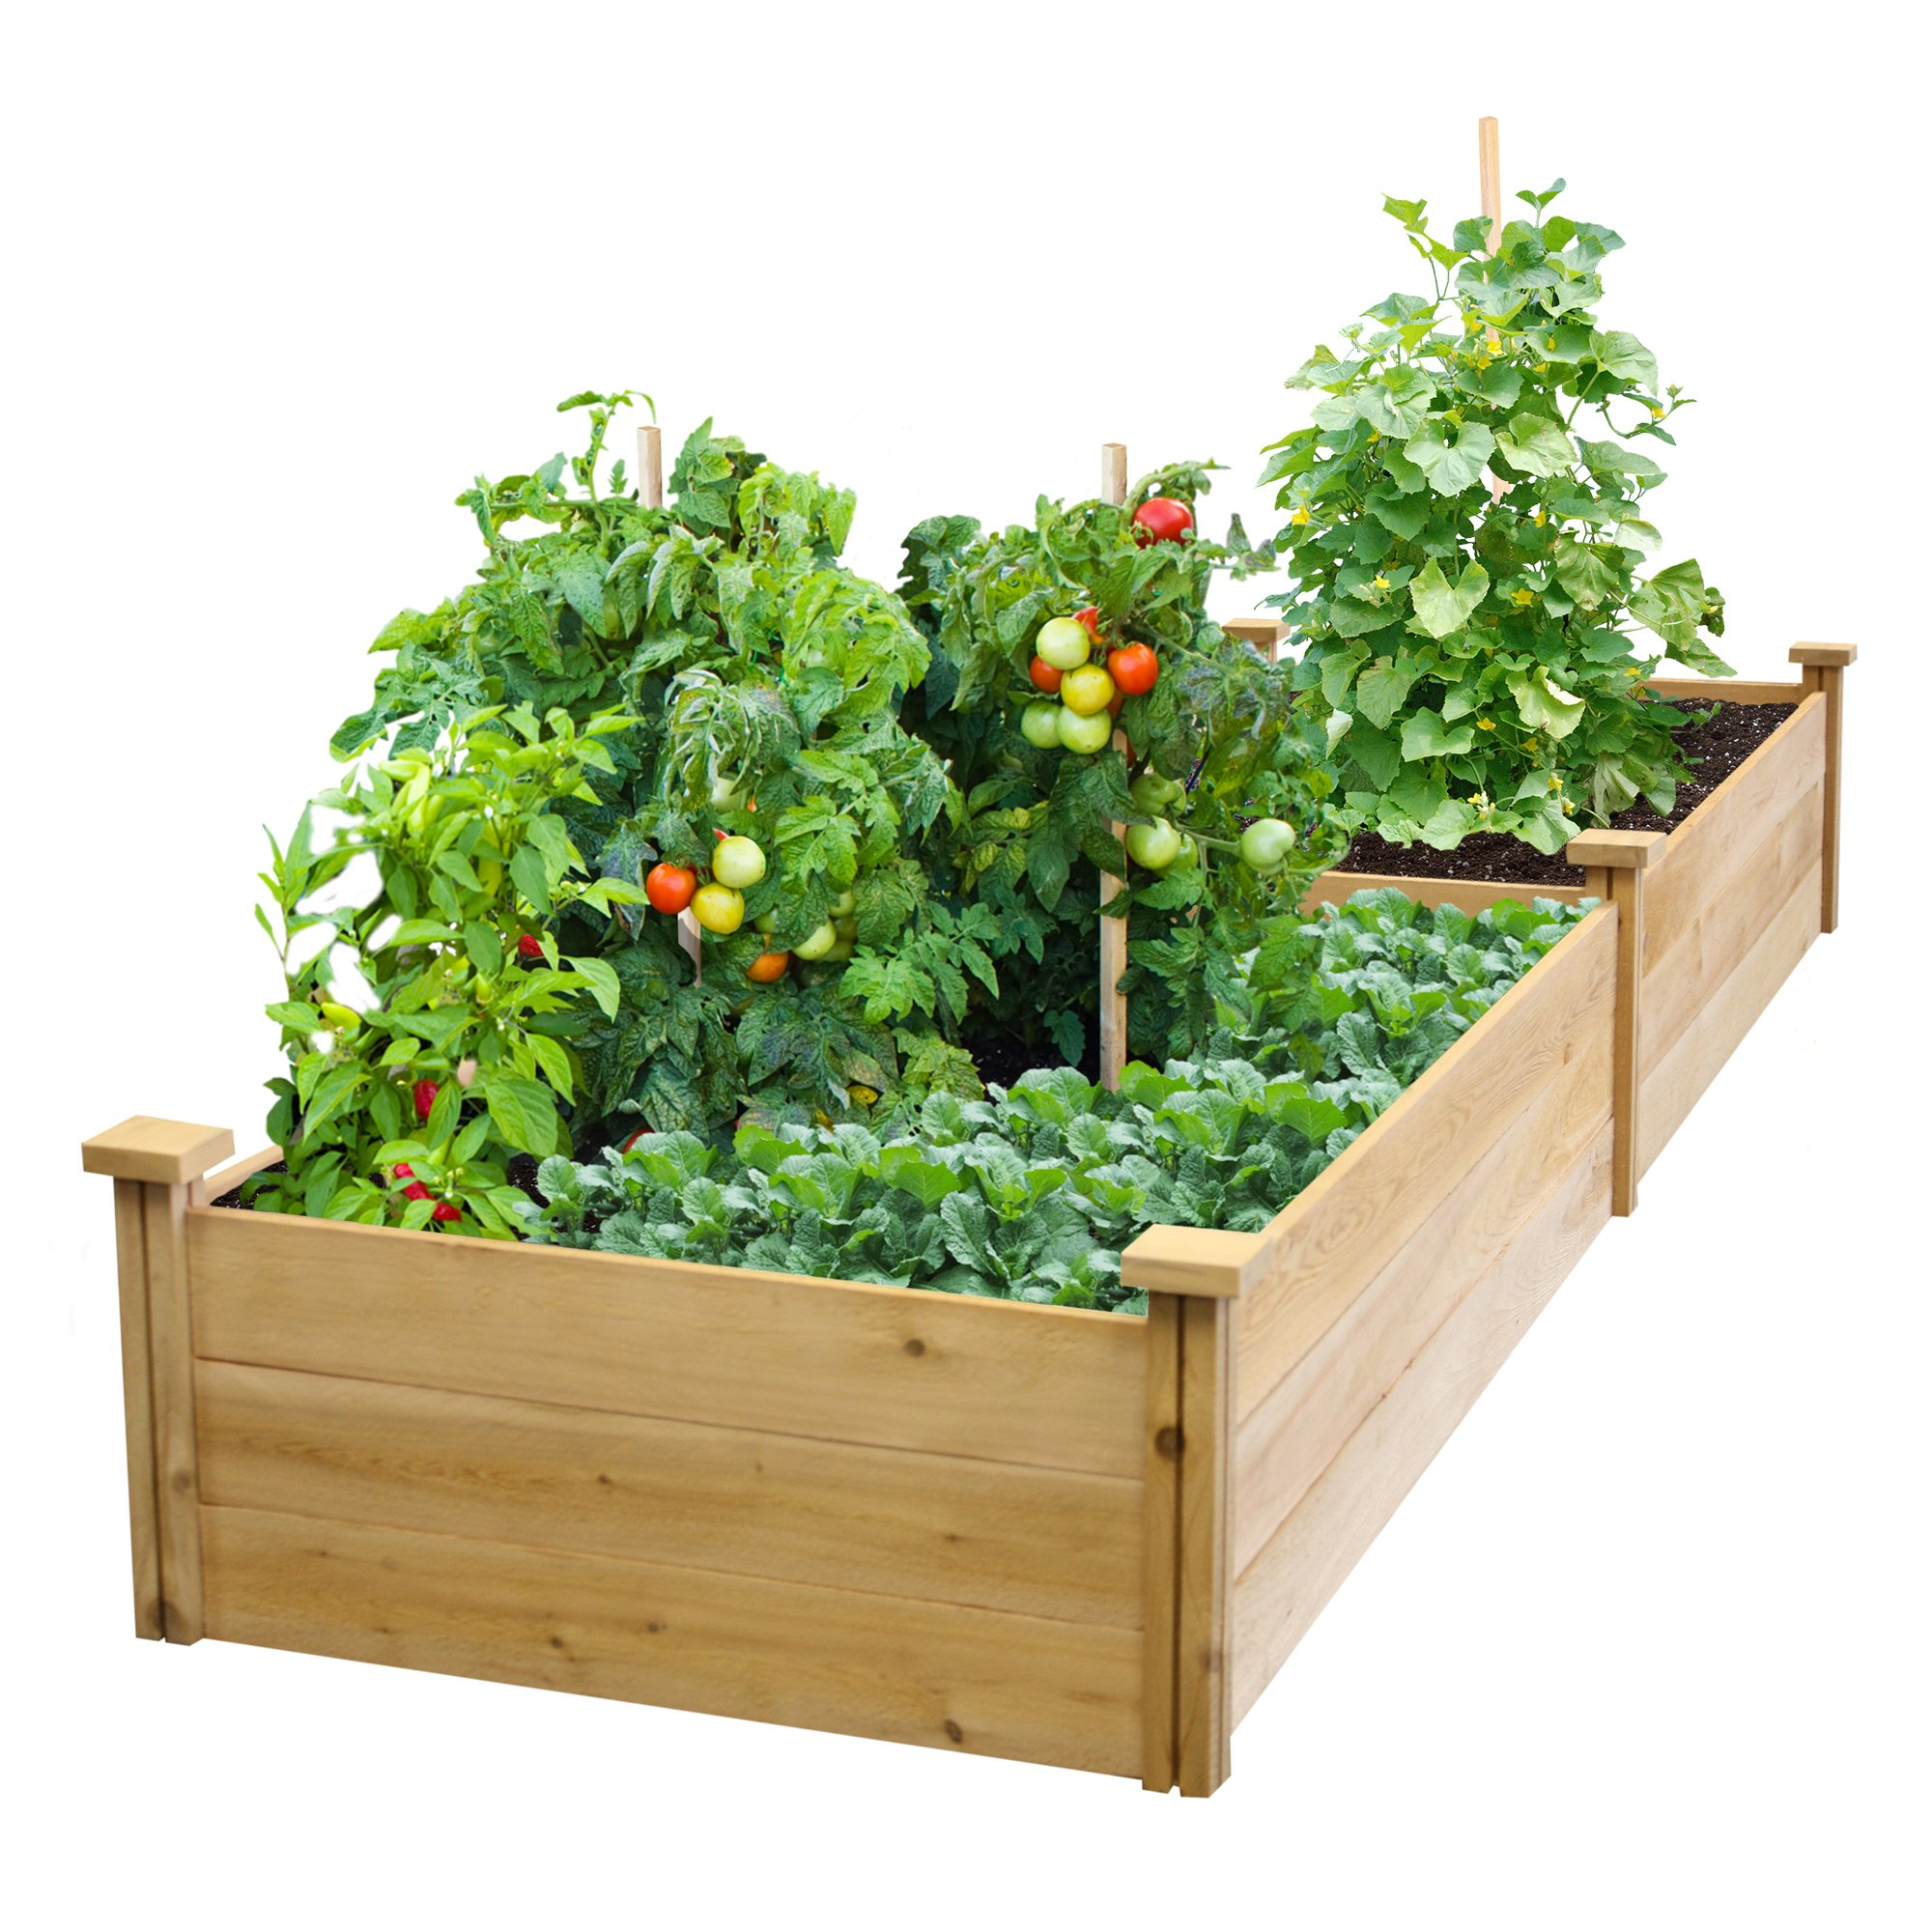 Best Value Cedar Raised Garden Bed Planter 24'' W x 96'' L x 10.5'' H